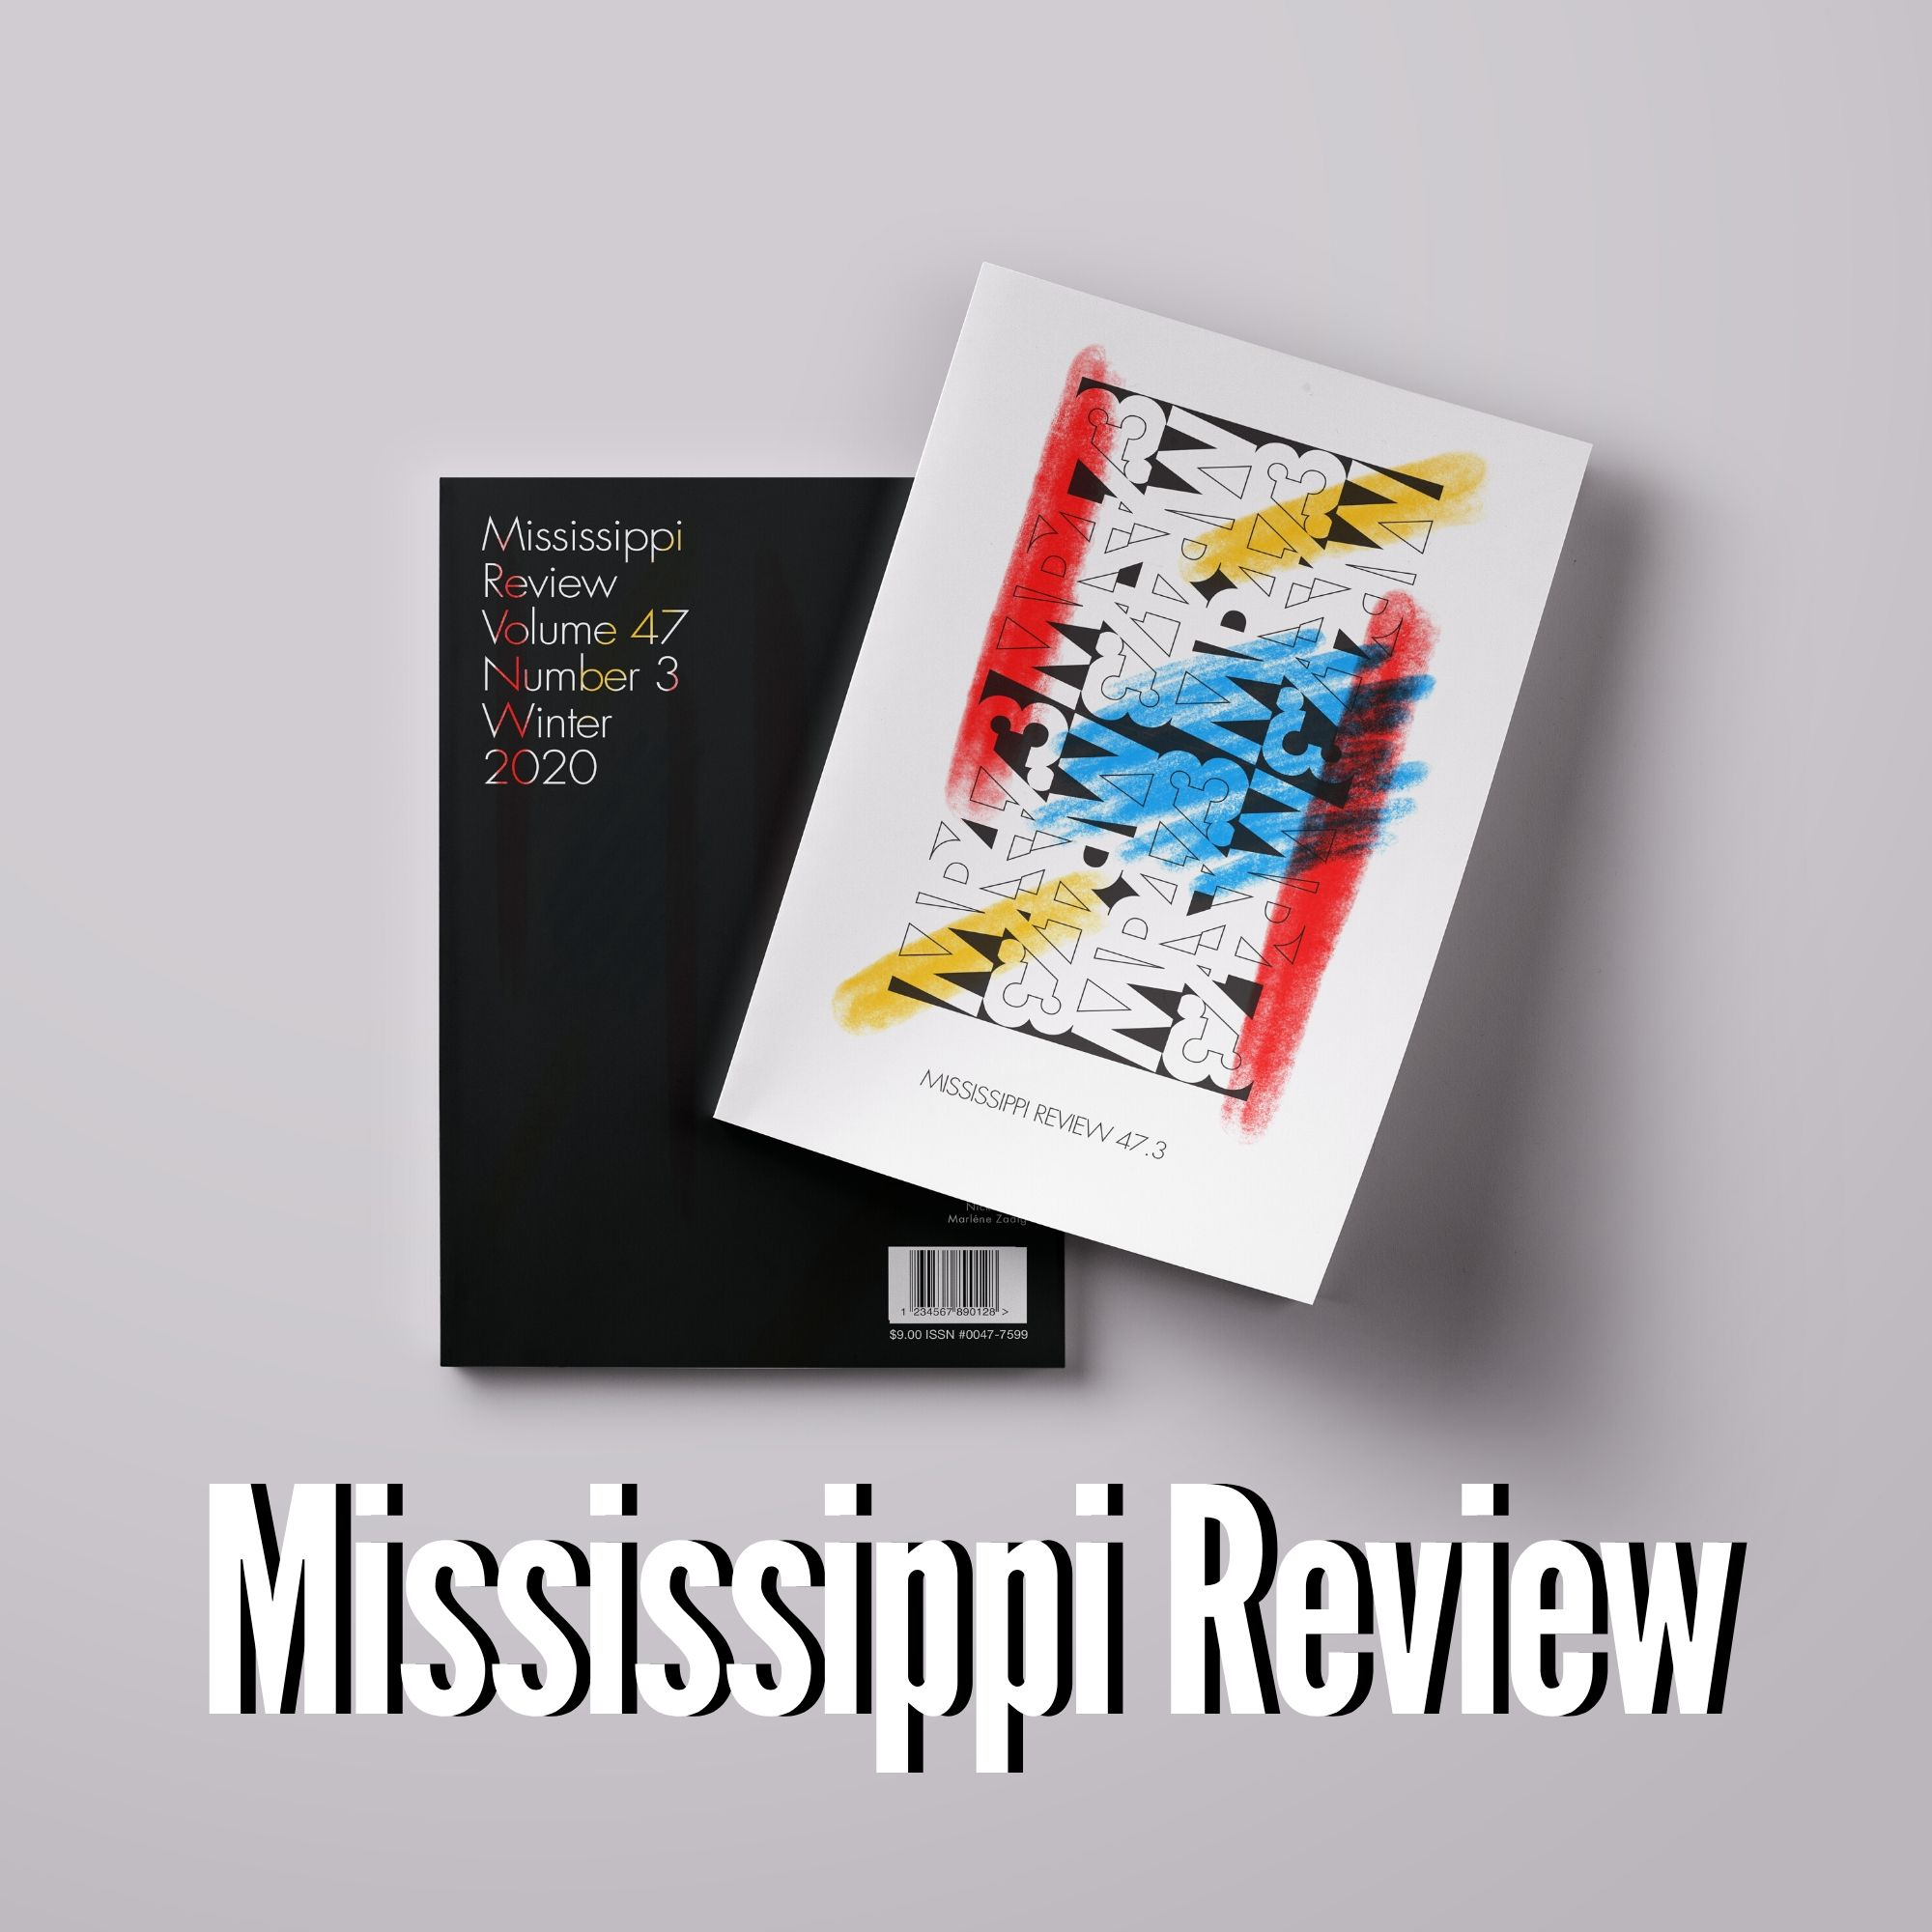 Mississippi Review